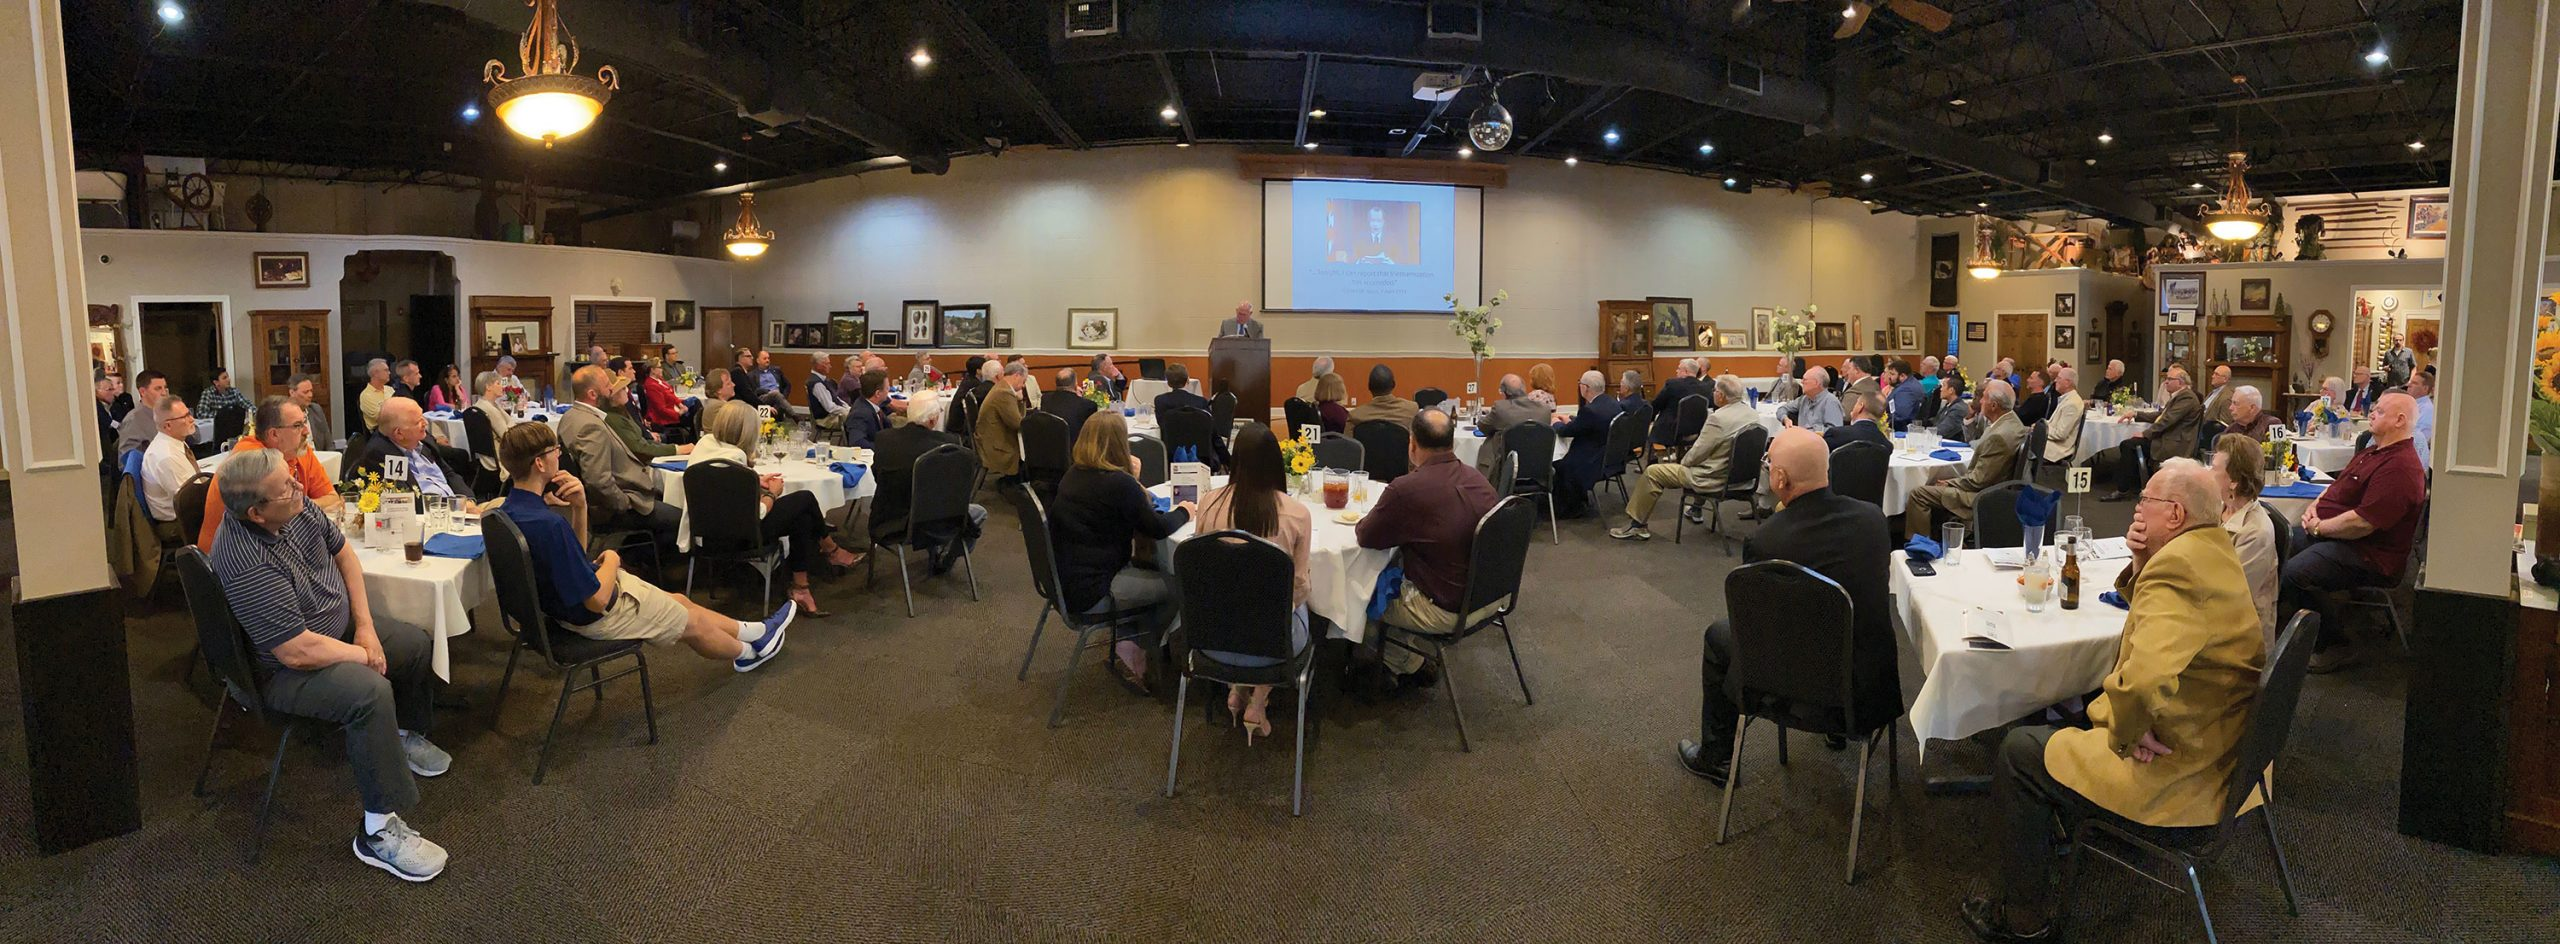 Guests and sponsors filled June's Northland in downtown Fort Leaveworth to listen to CGSC Professor Emeritus Dr. James H. Willbanks present the 13th lecture in the CGSC Foundation's Vietnam War Commemoration Lecture Series on May 13, 2021.